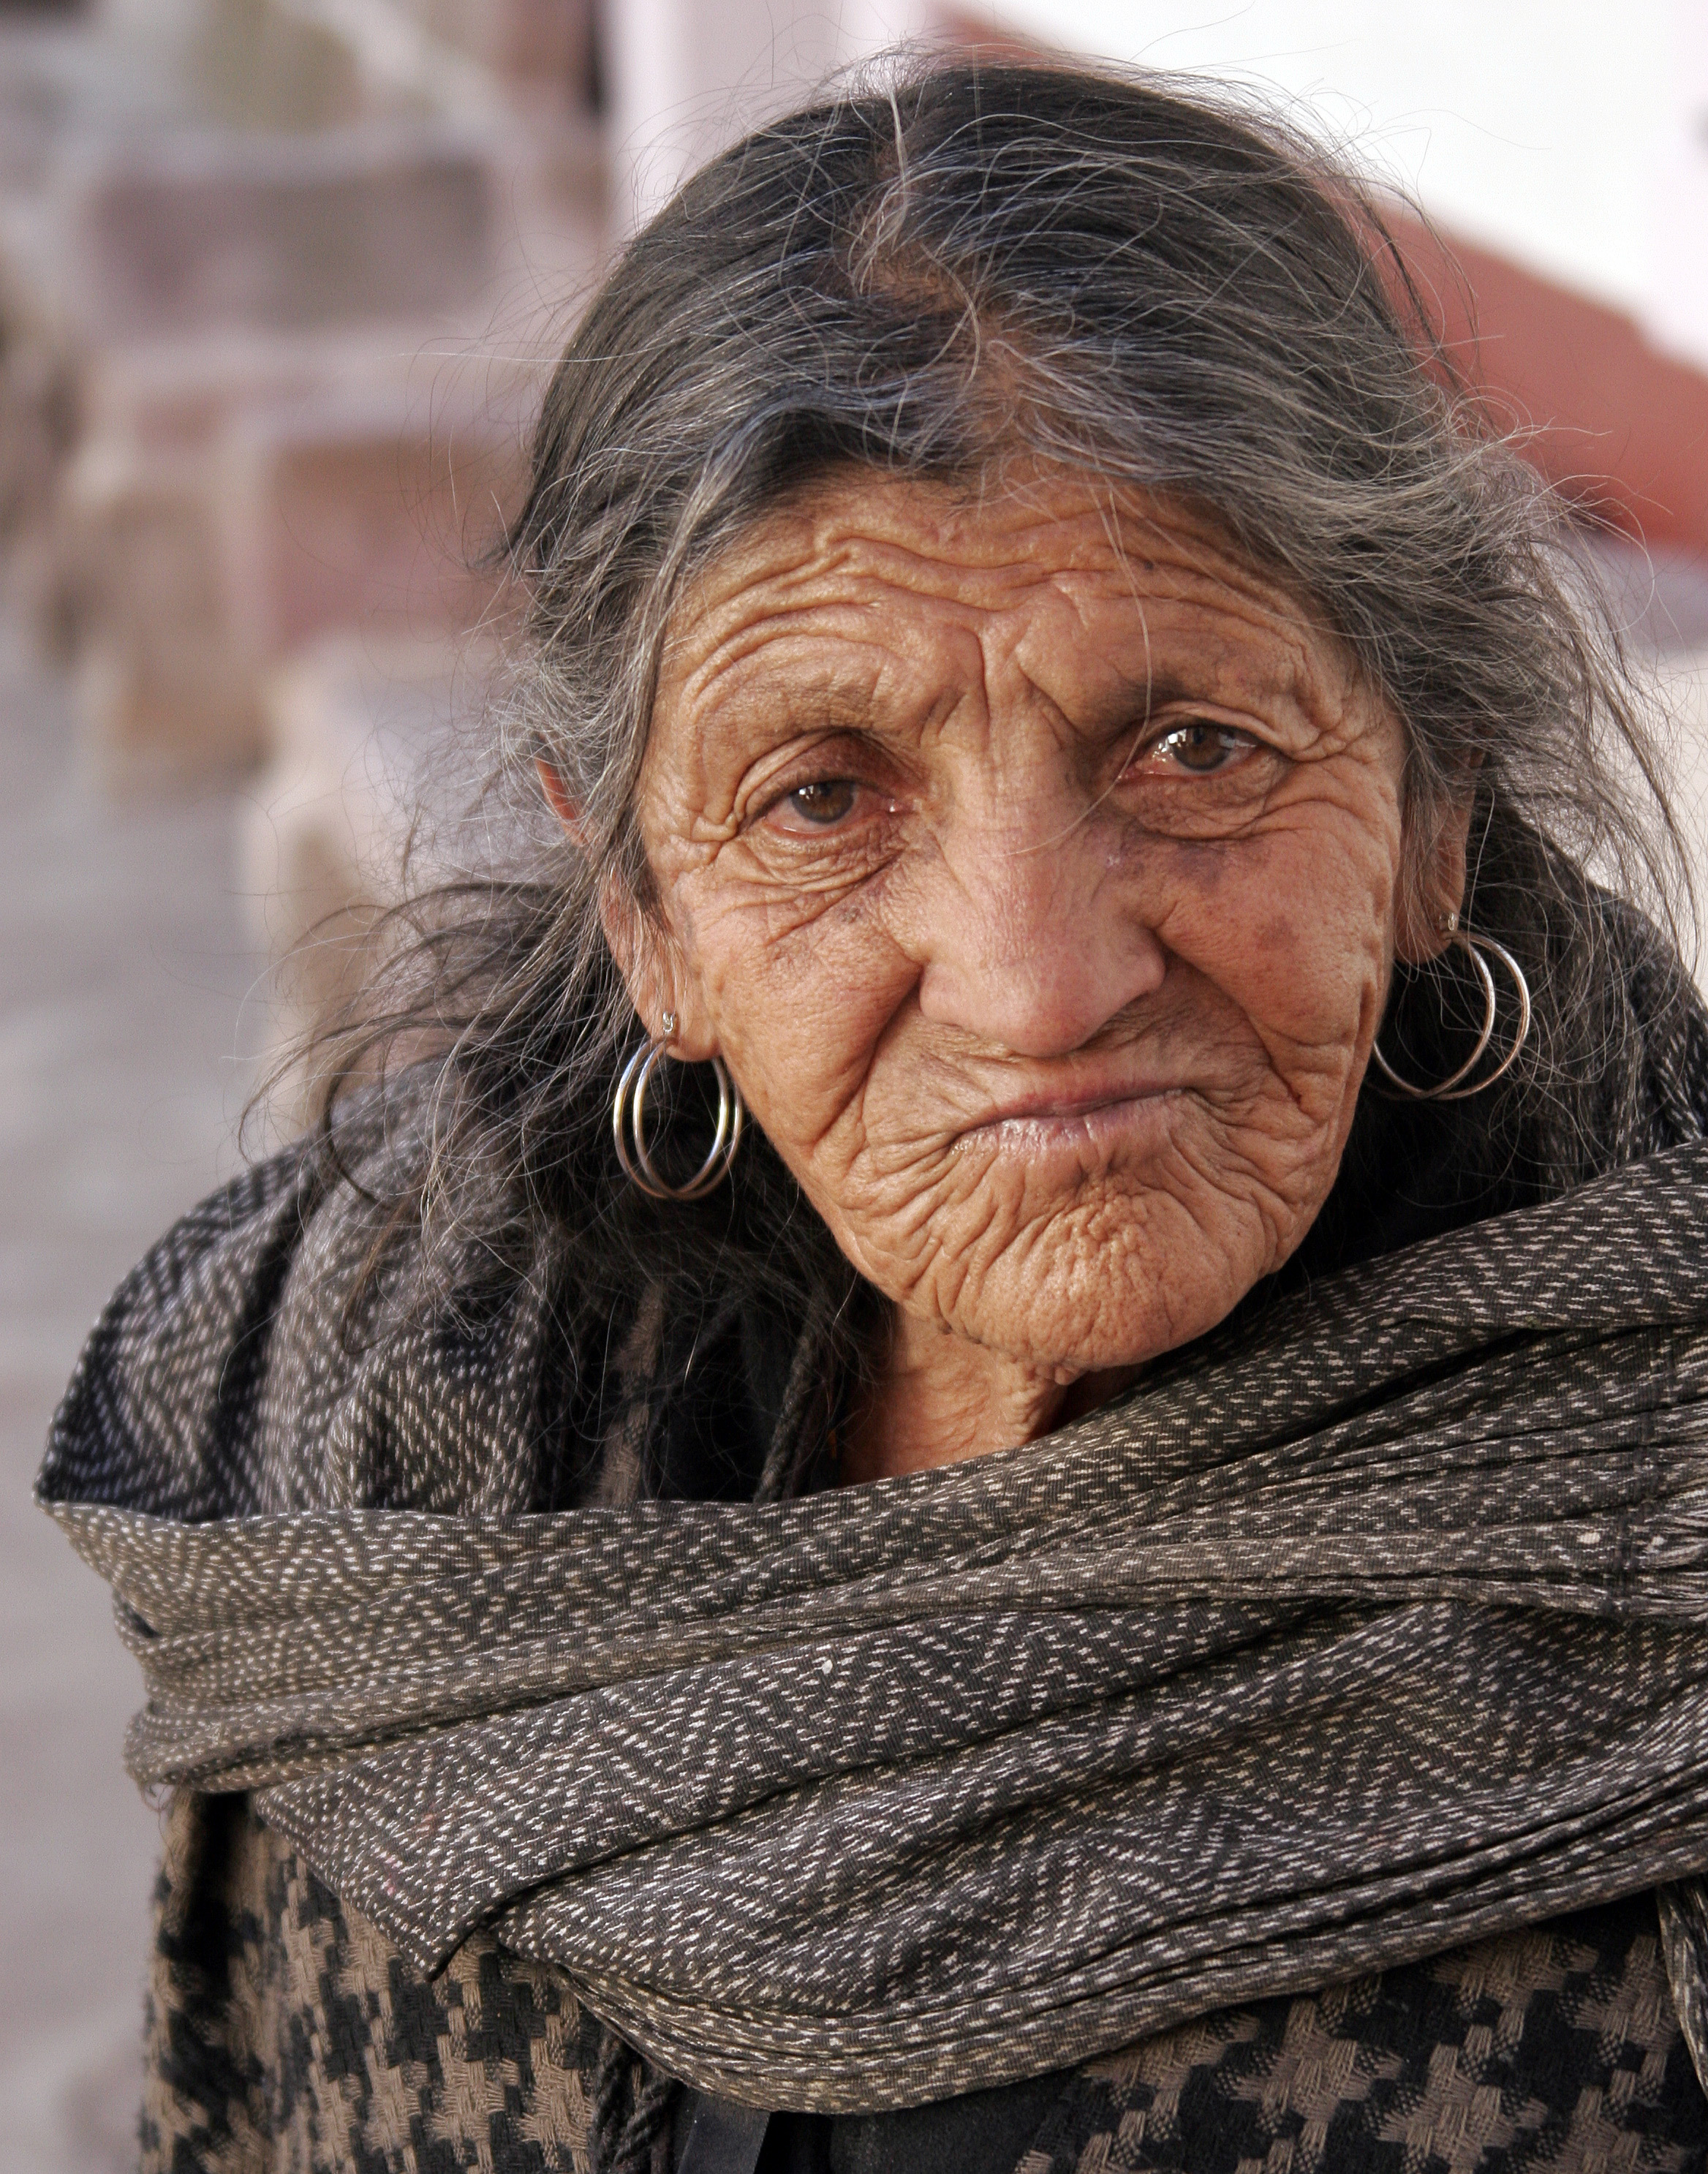 Description old zacatecas lady